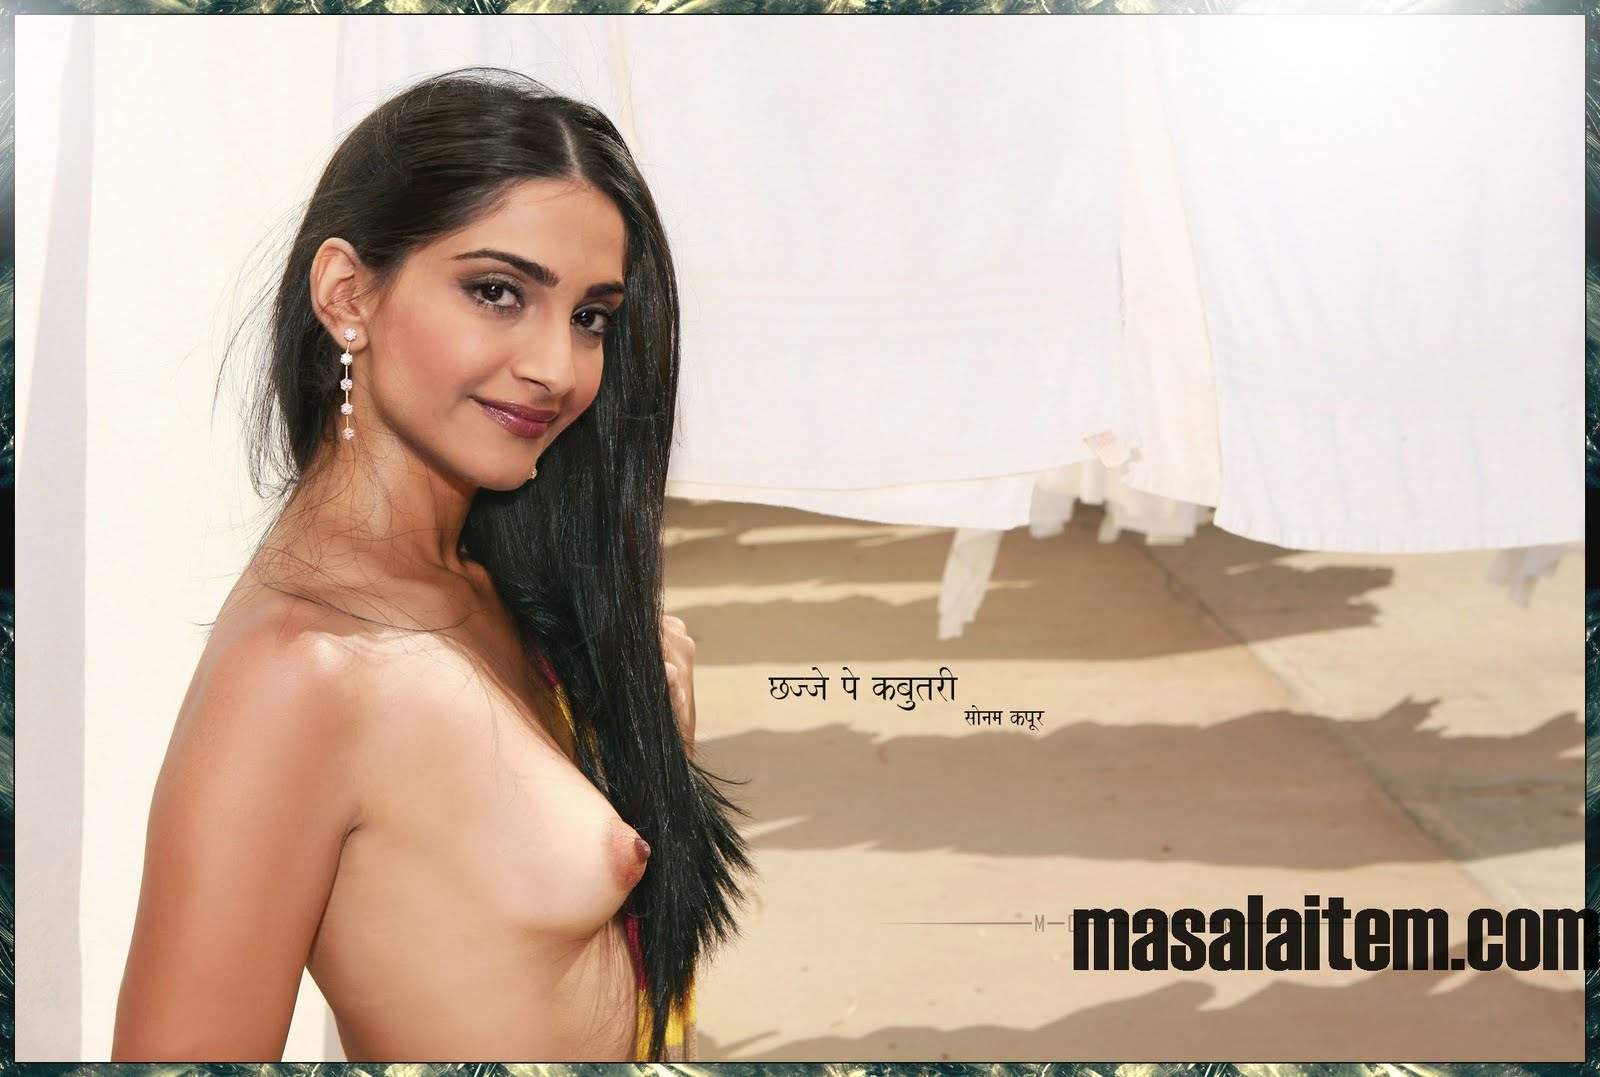 Sonam2011Hindiver3.jpg on sonam kapoor nude pussy and boobs image ...